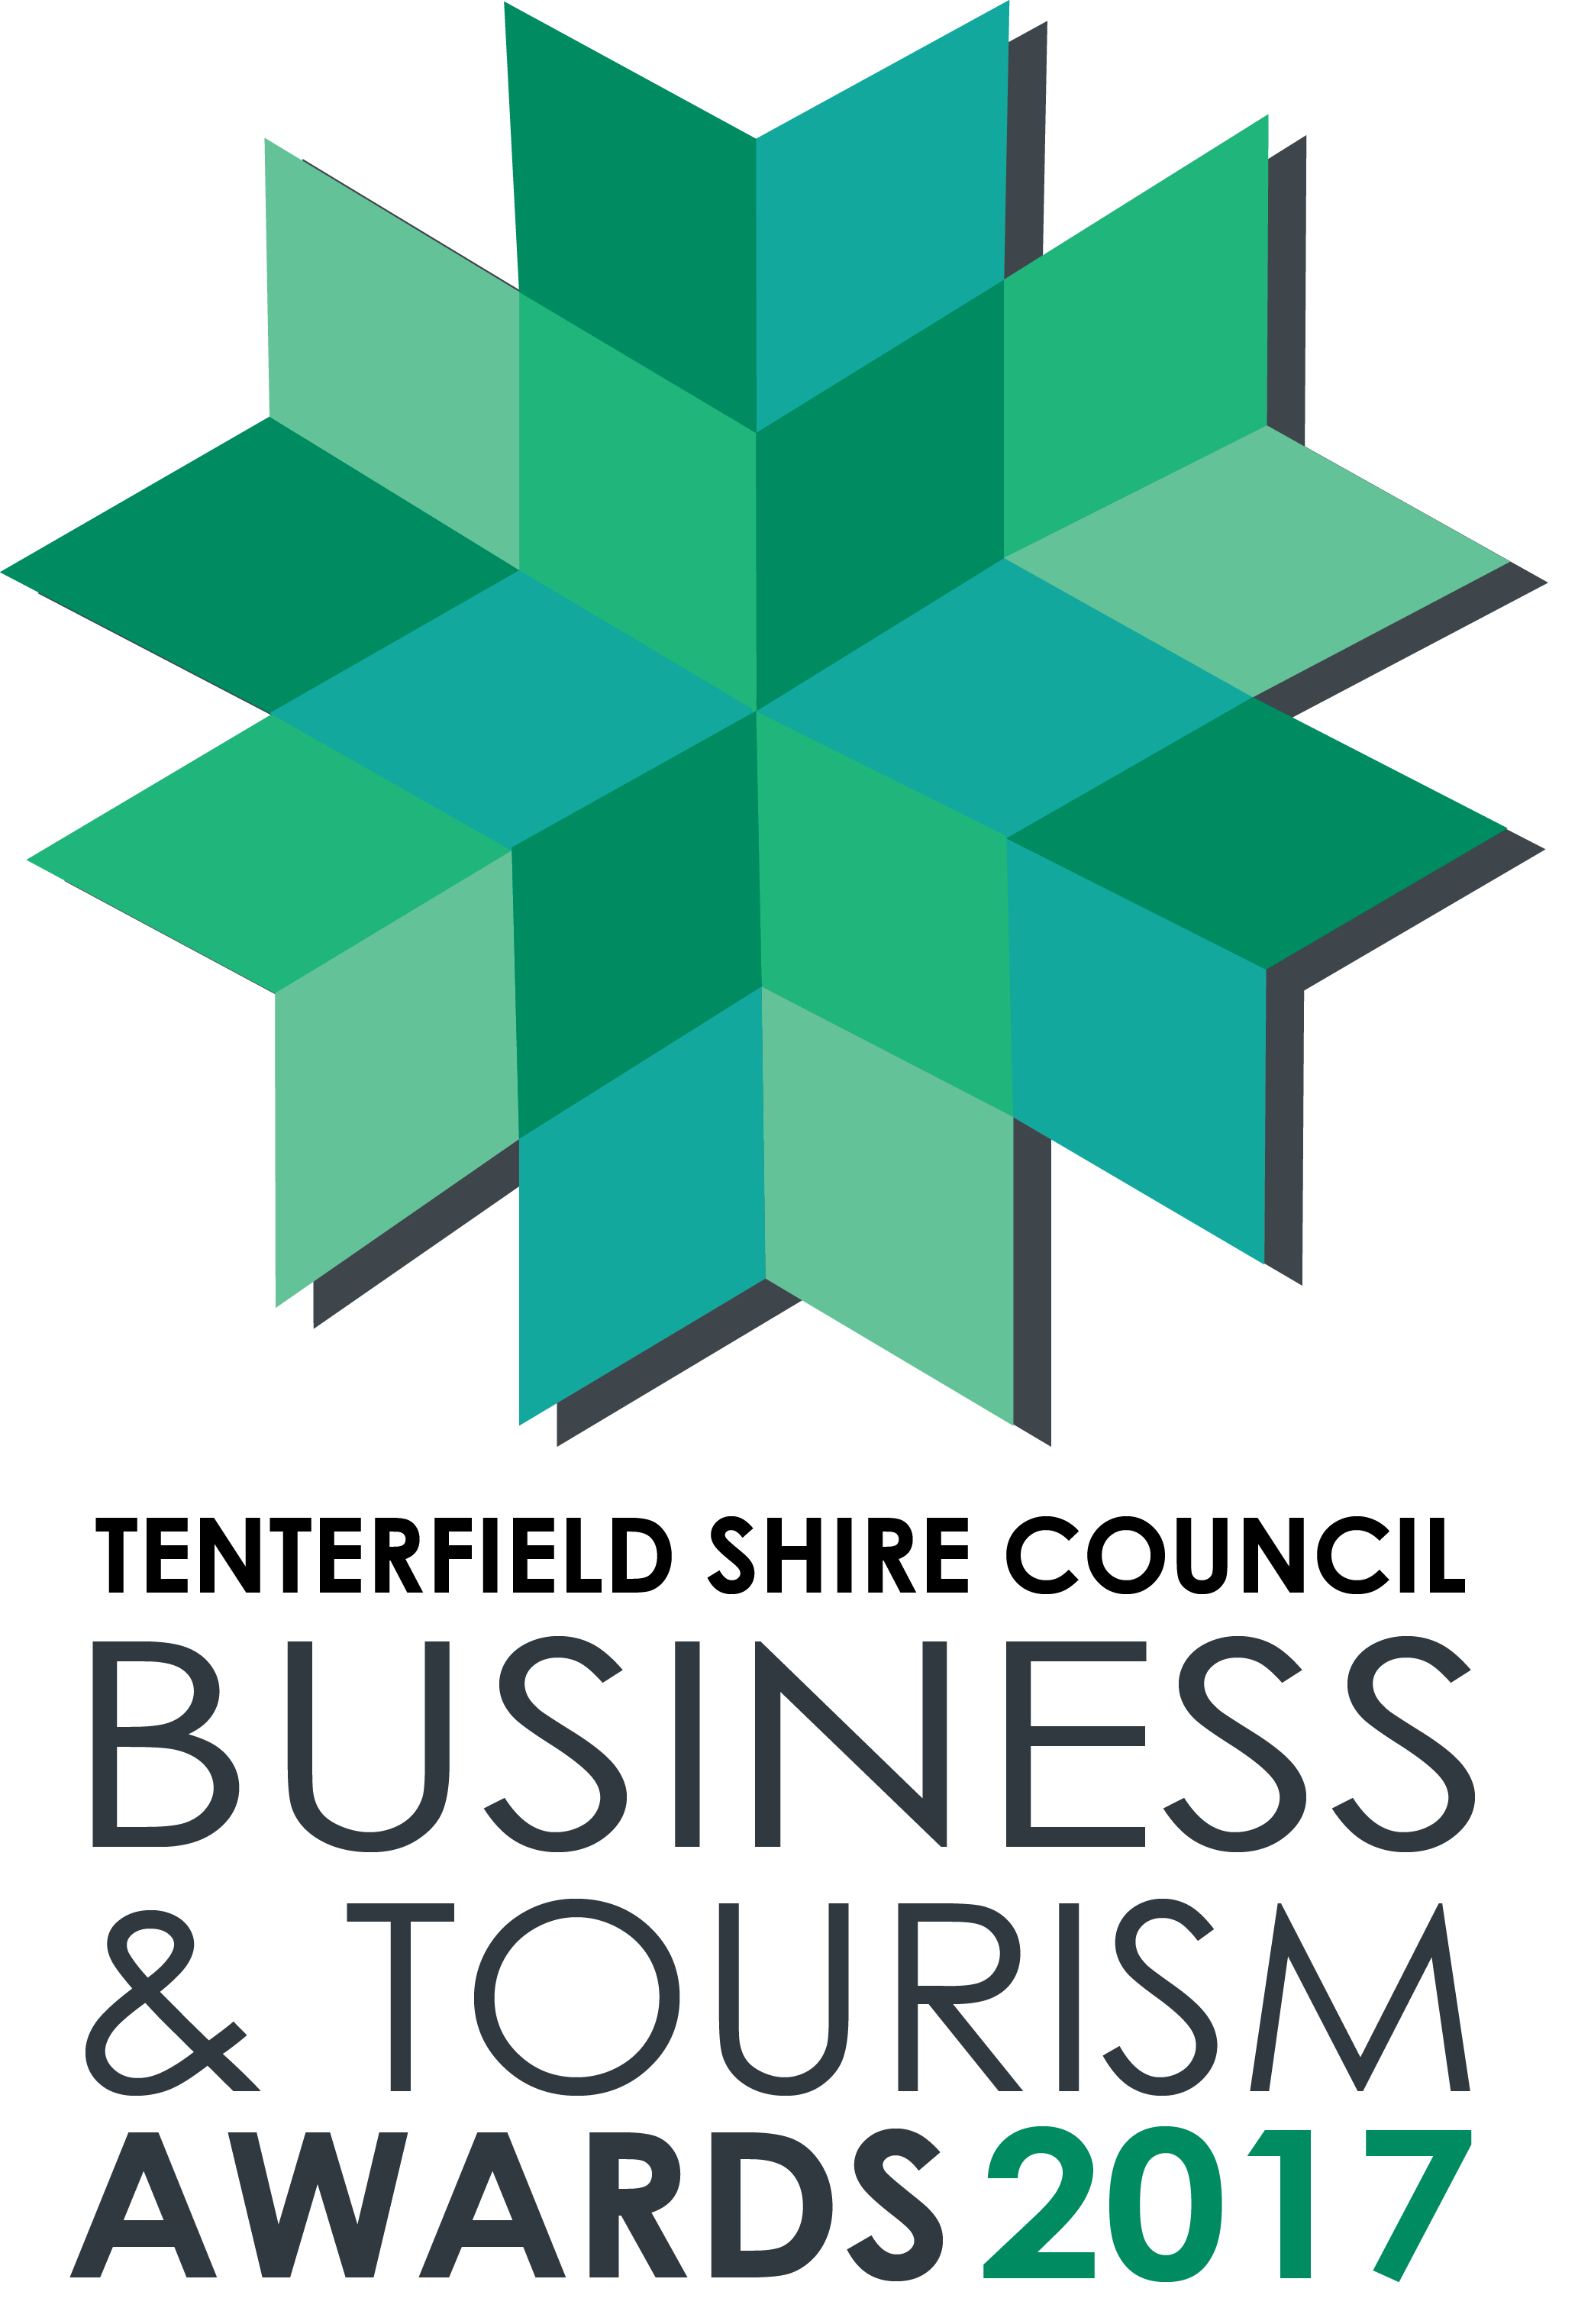 Tenterfield Business & Tourism Awards Logo